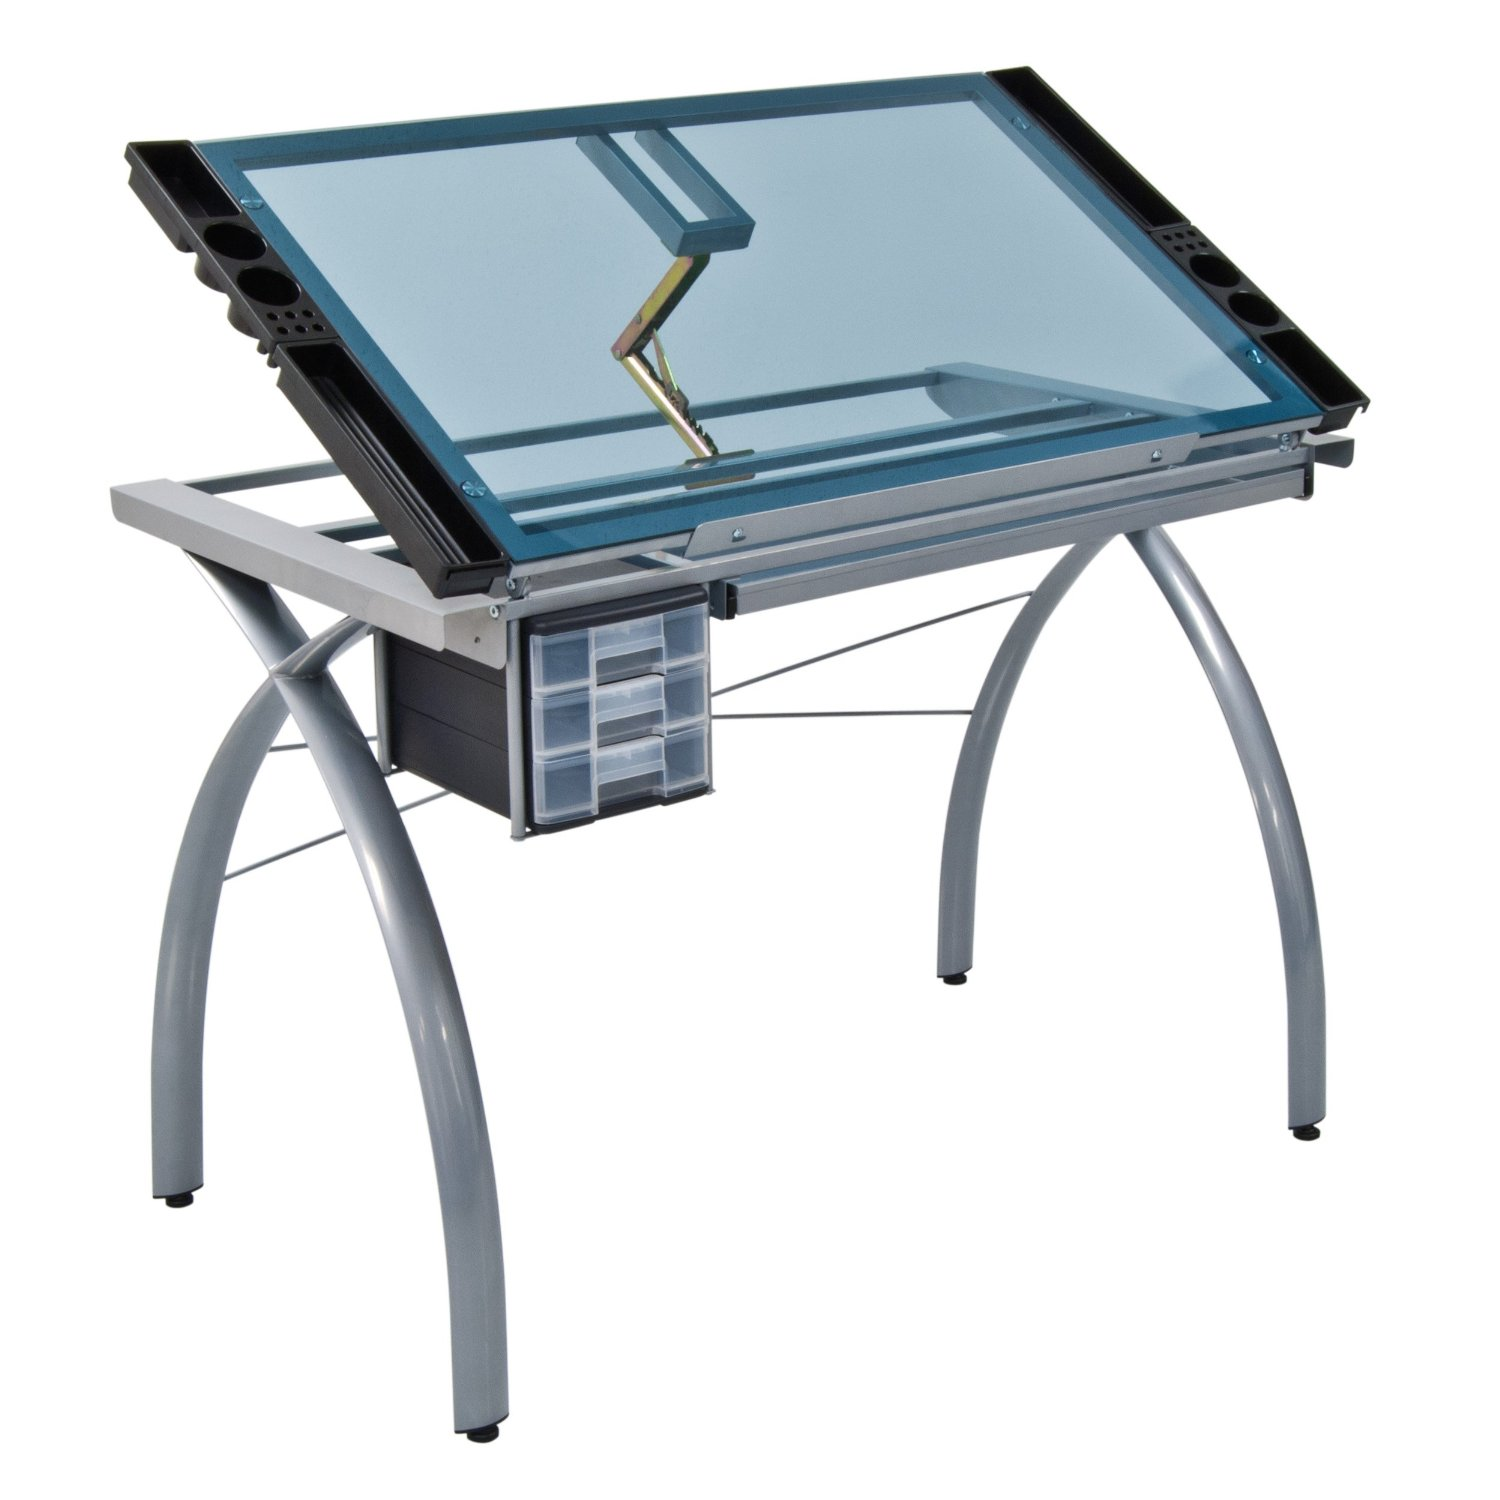 Top 10 Best Drafting Table Reviews — A Guide to Finding the Perfect One in 2020